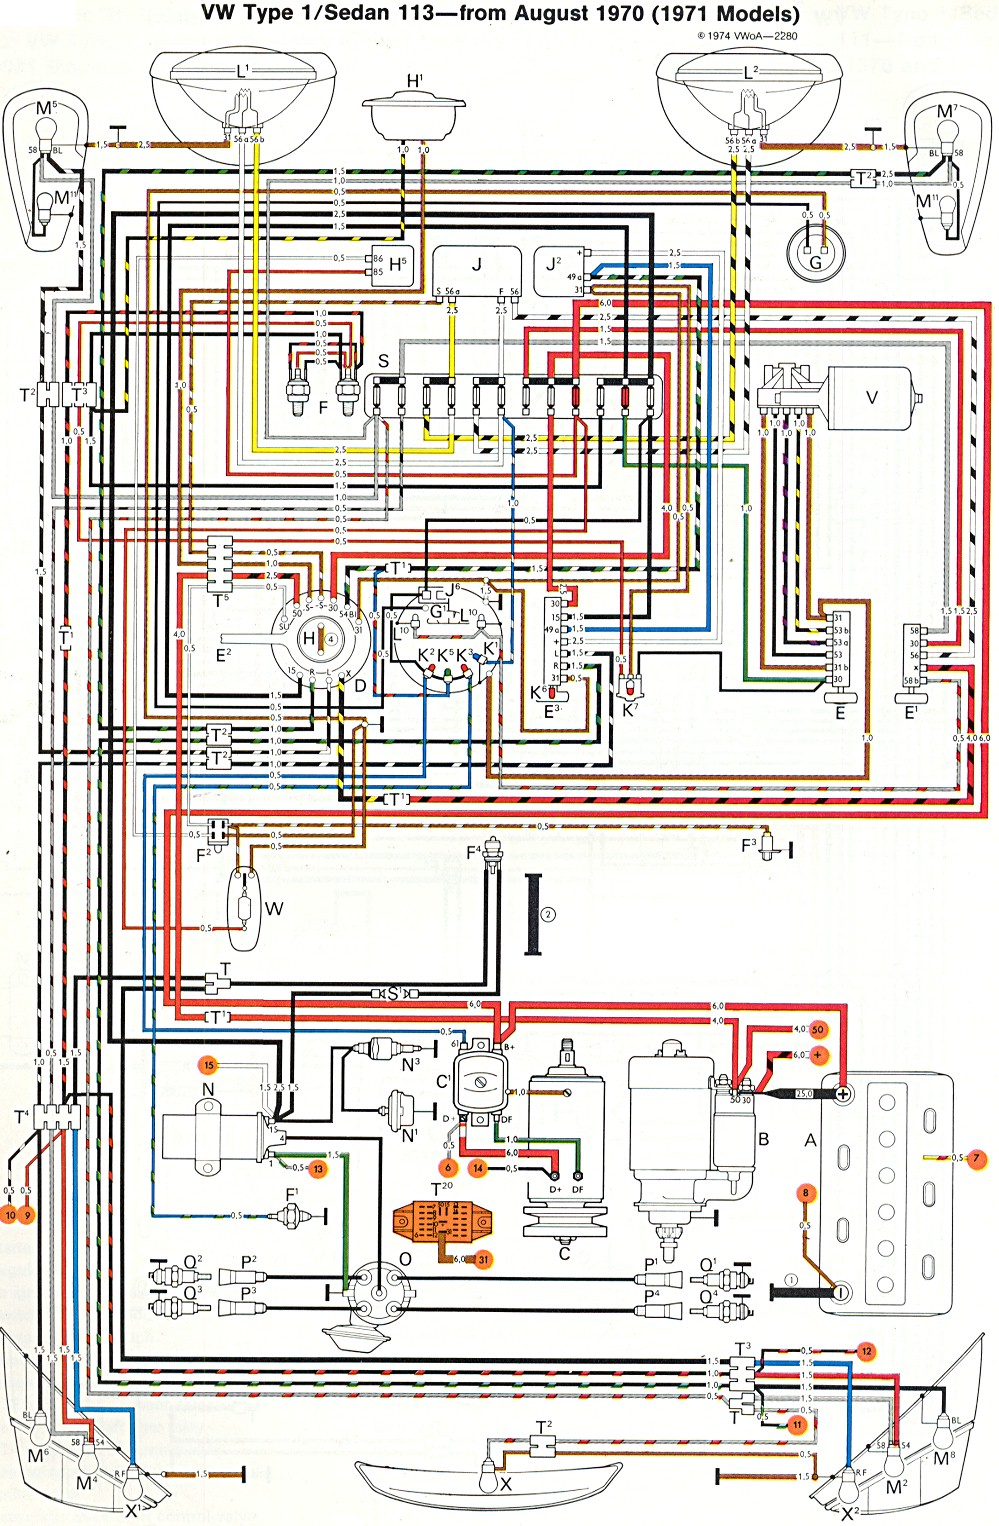 1971 volkswagen wiring diagram simple wiring diagram 2007 vw passat fuse  panel 1971 super beetle wiring